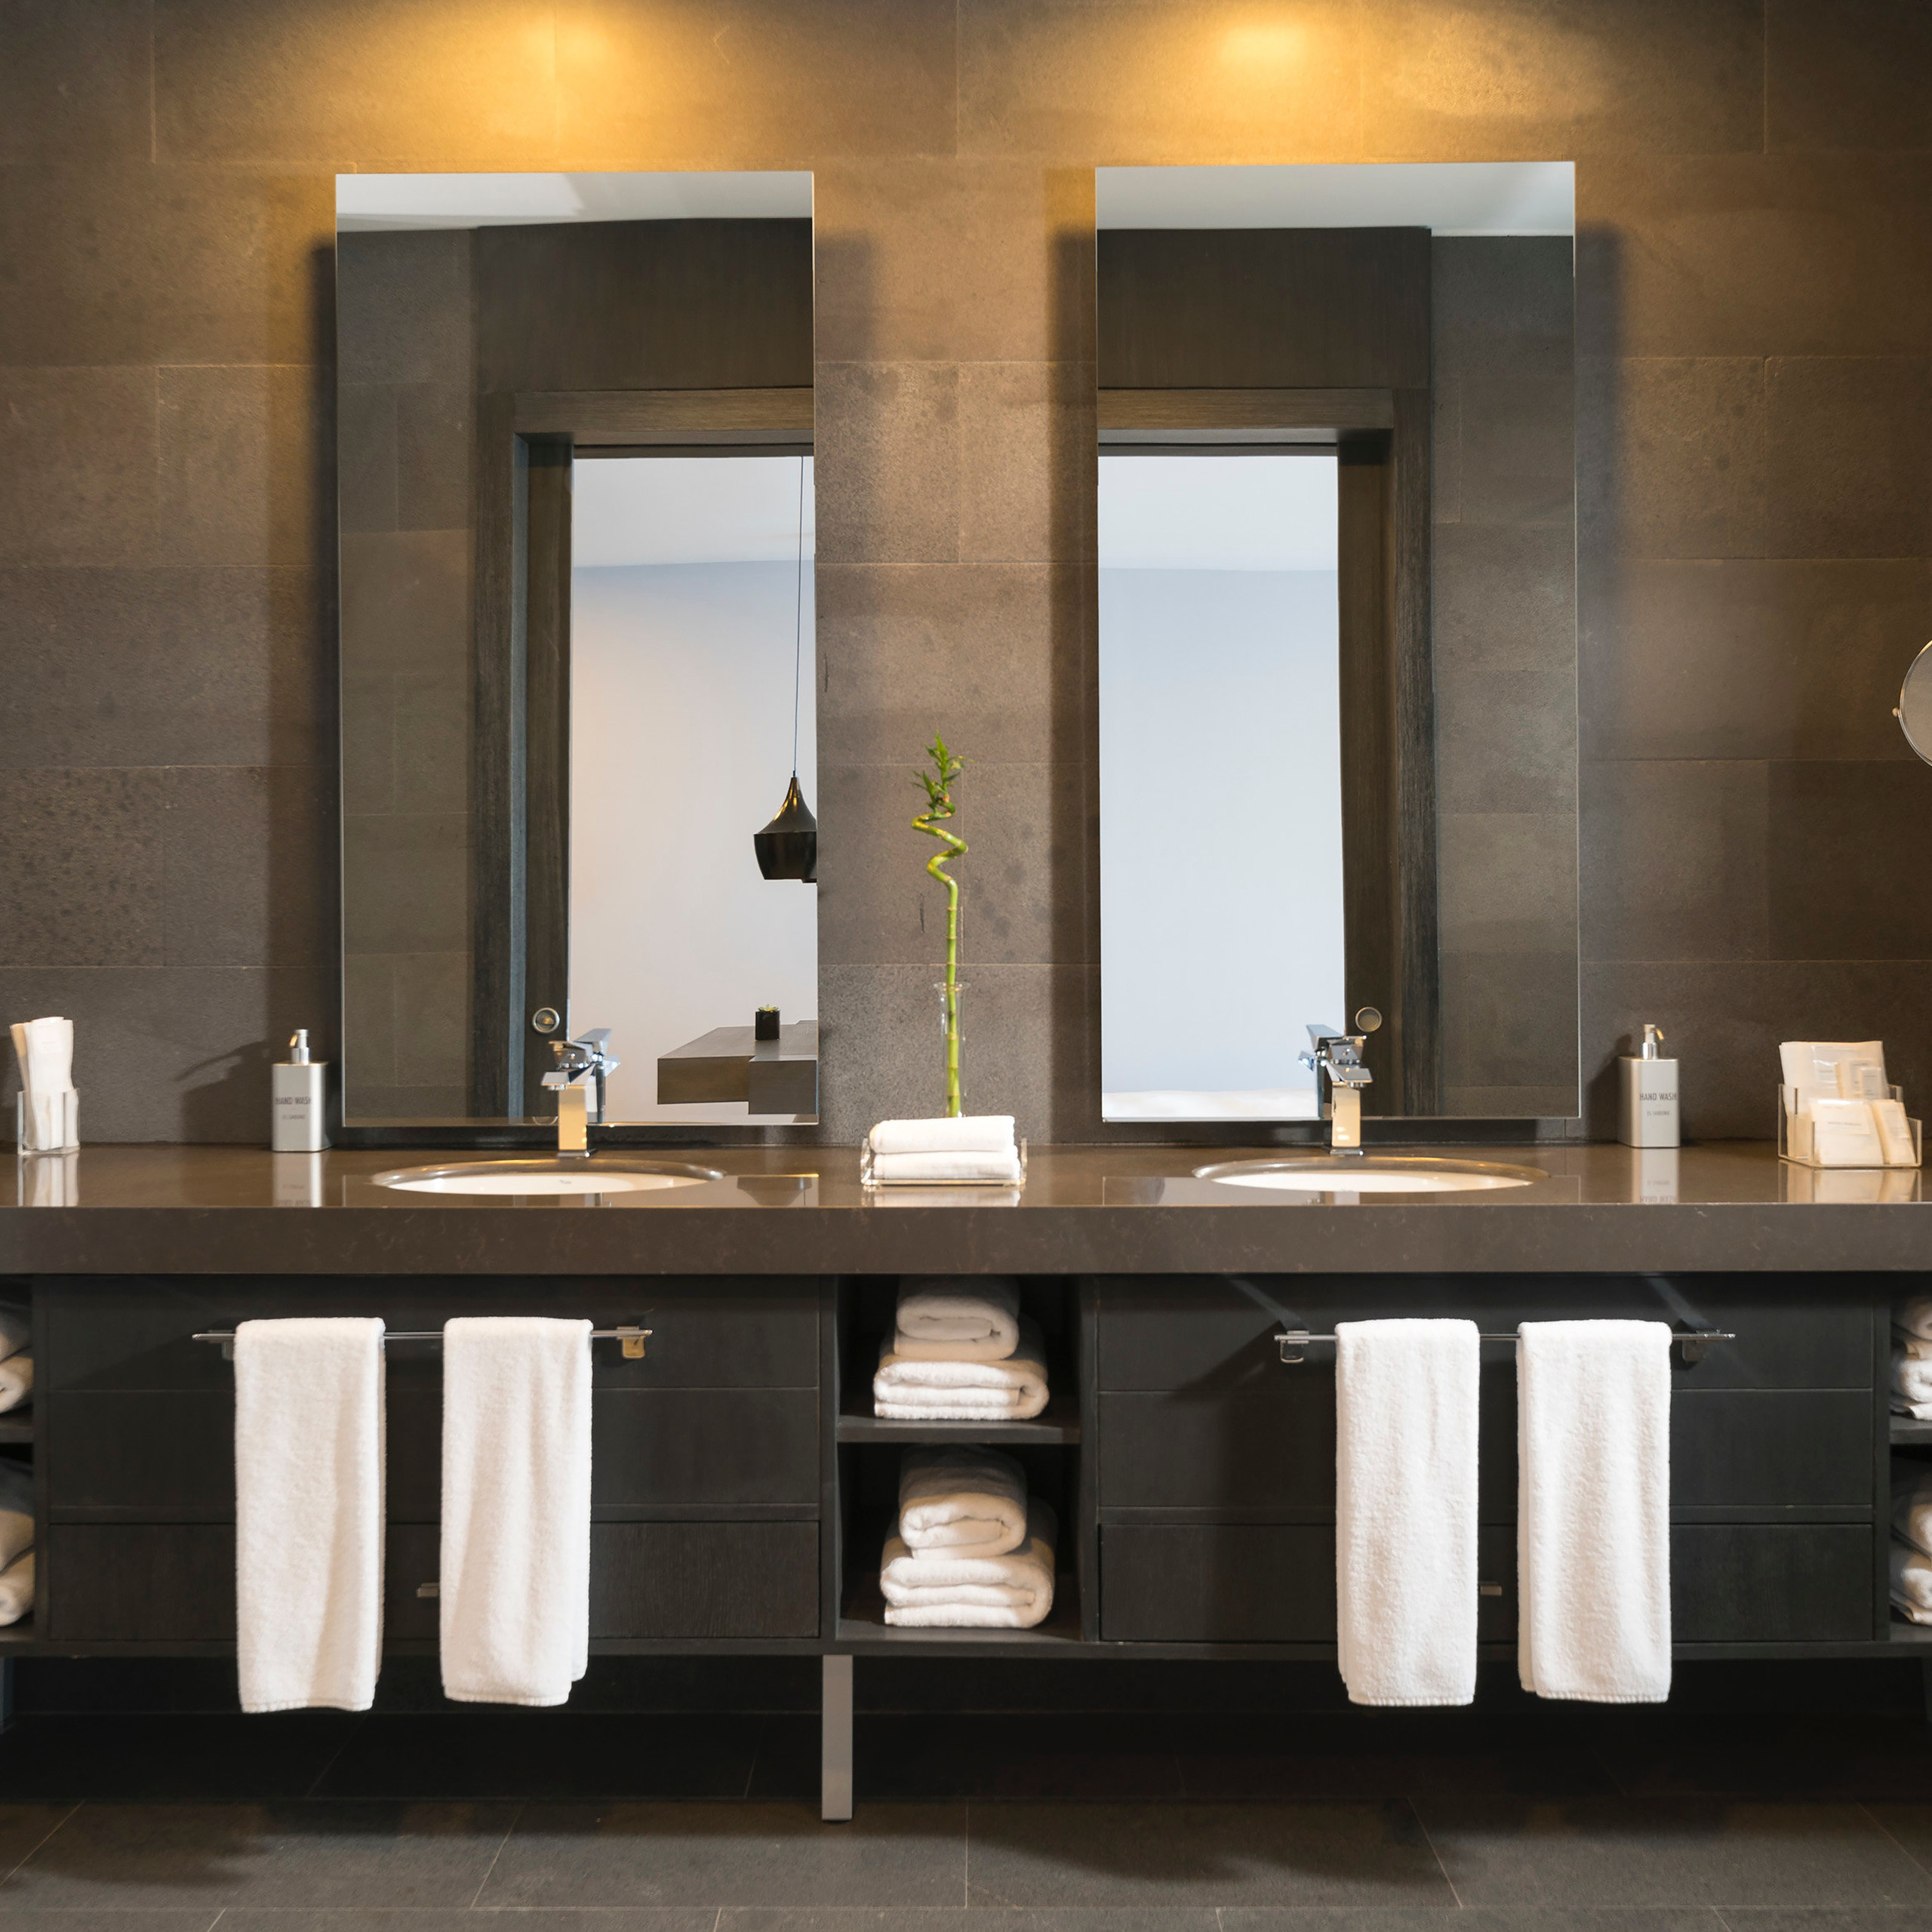 stunning interior photography of a bathroom with towels and mirror and well lit up